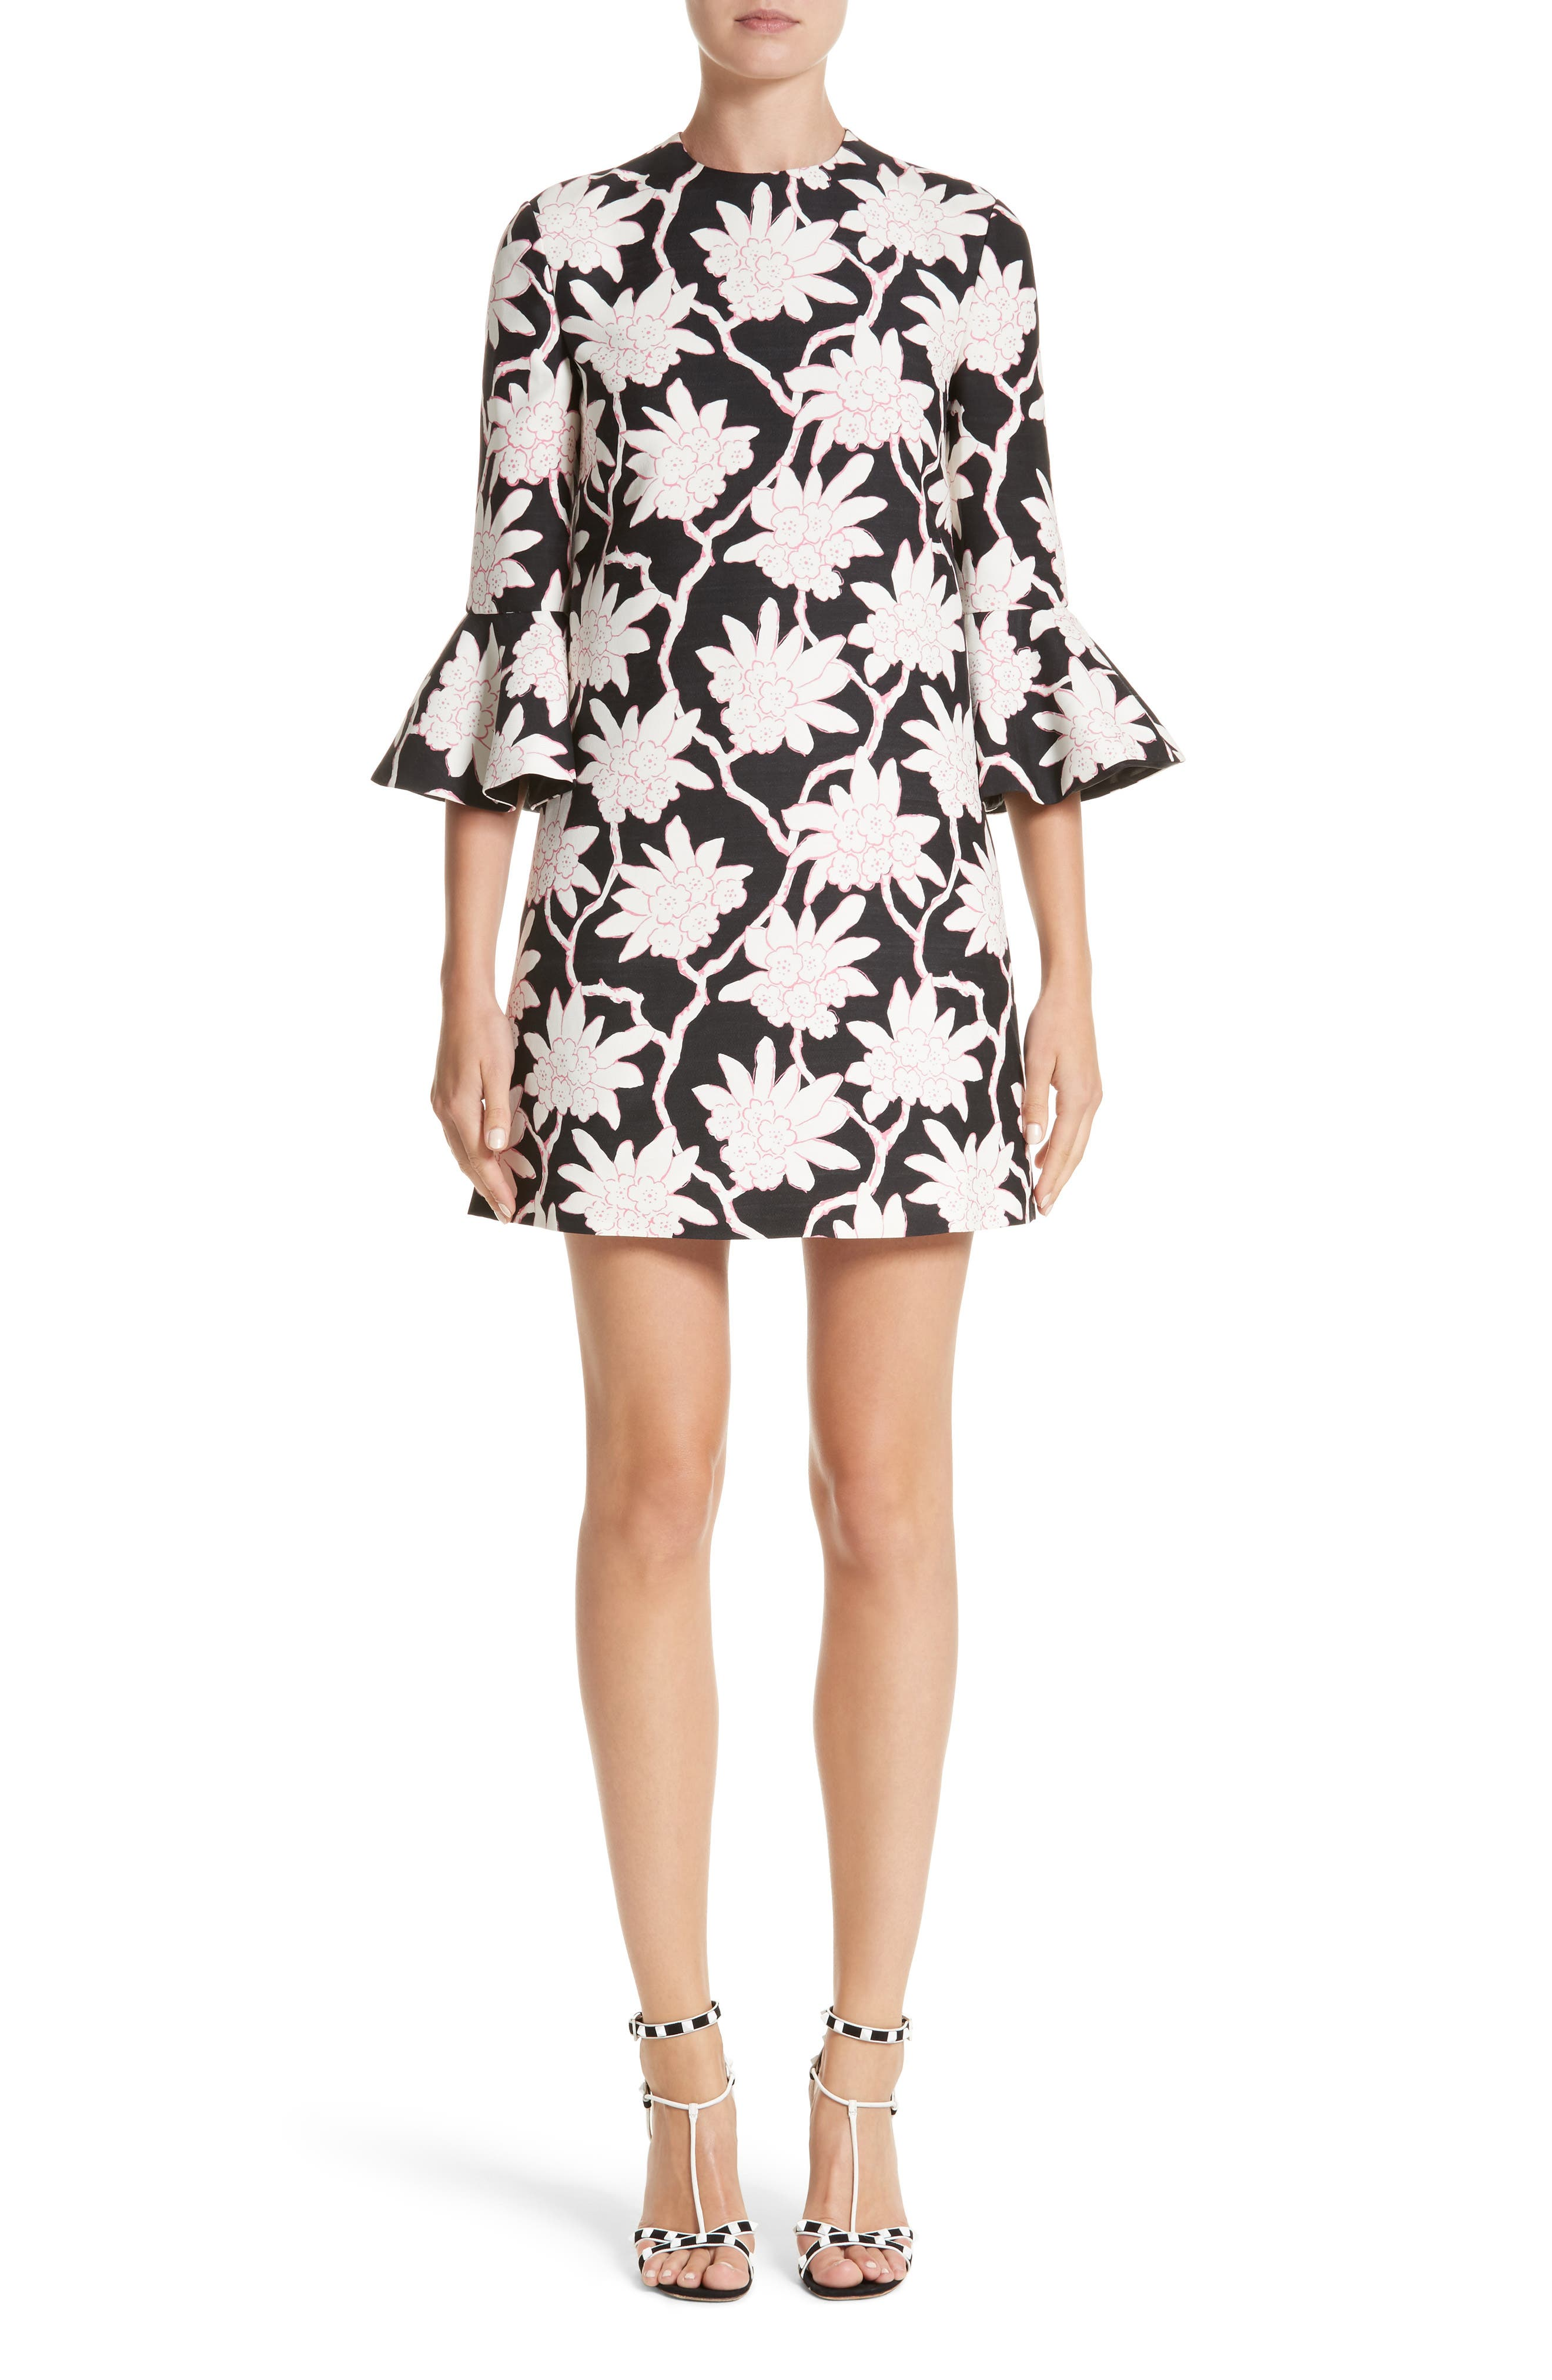 Rhododendron Print Wool & Silk Dress,                             Main thumbnail 1, color,                             Black